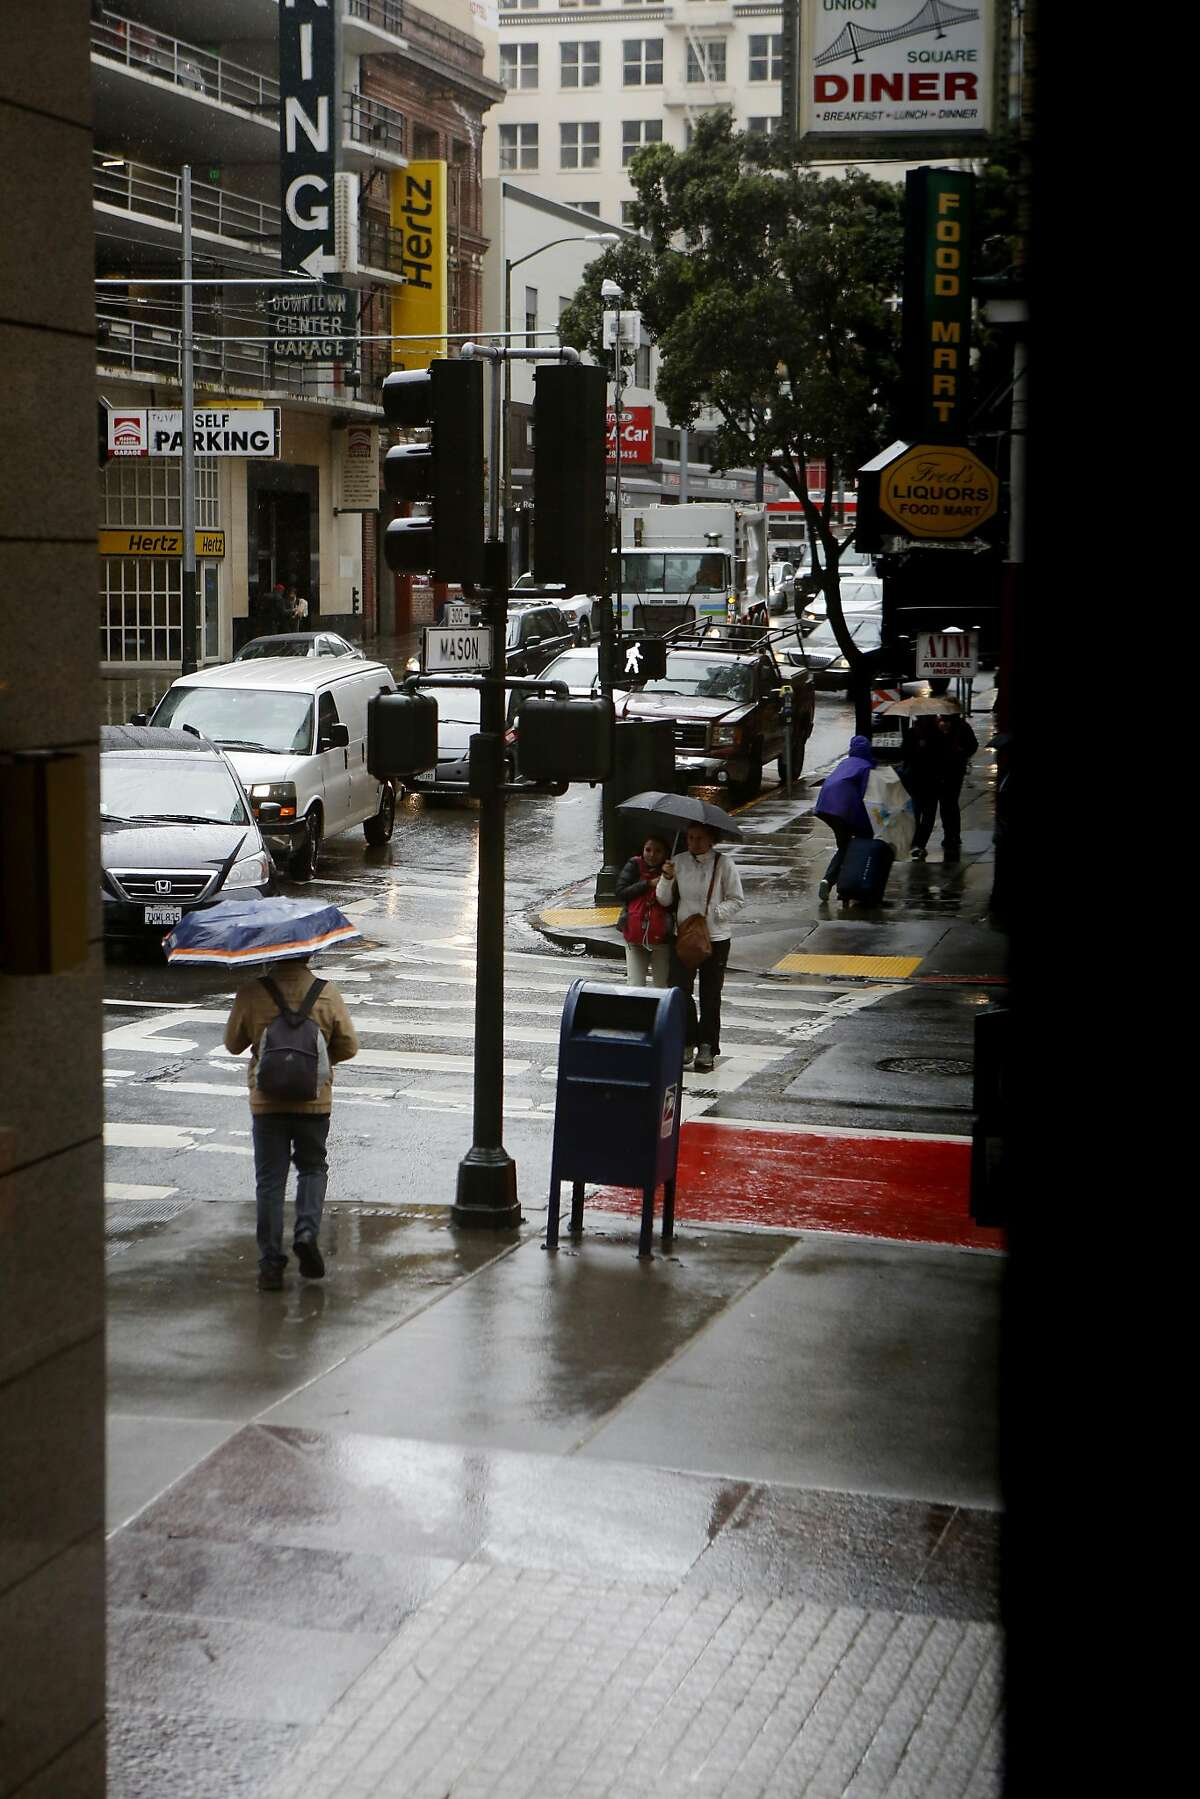 People walk through the rain in downtown San Francisco on Friday, March 24, 2017, in San Francisco, Calif.